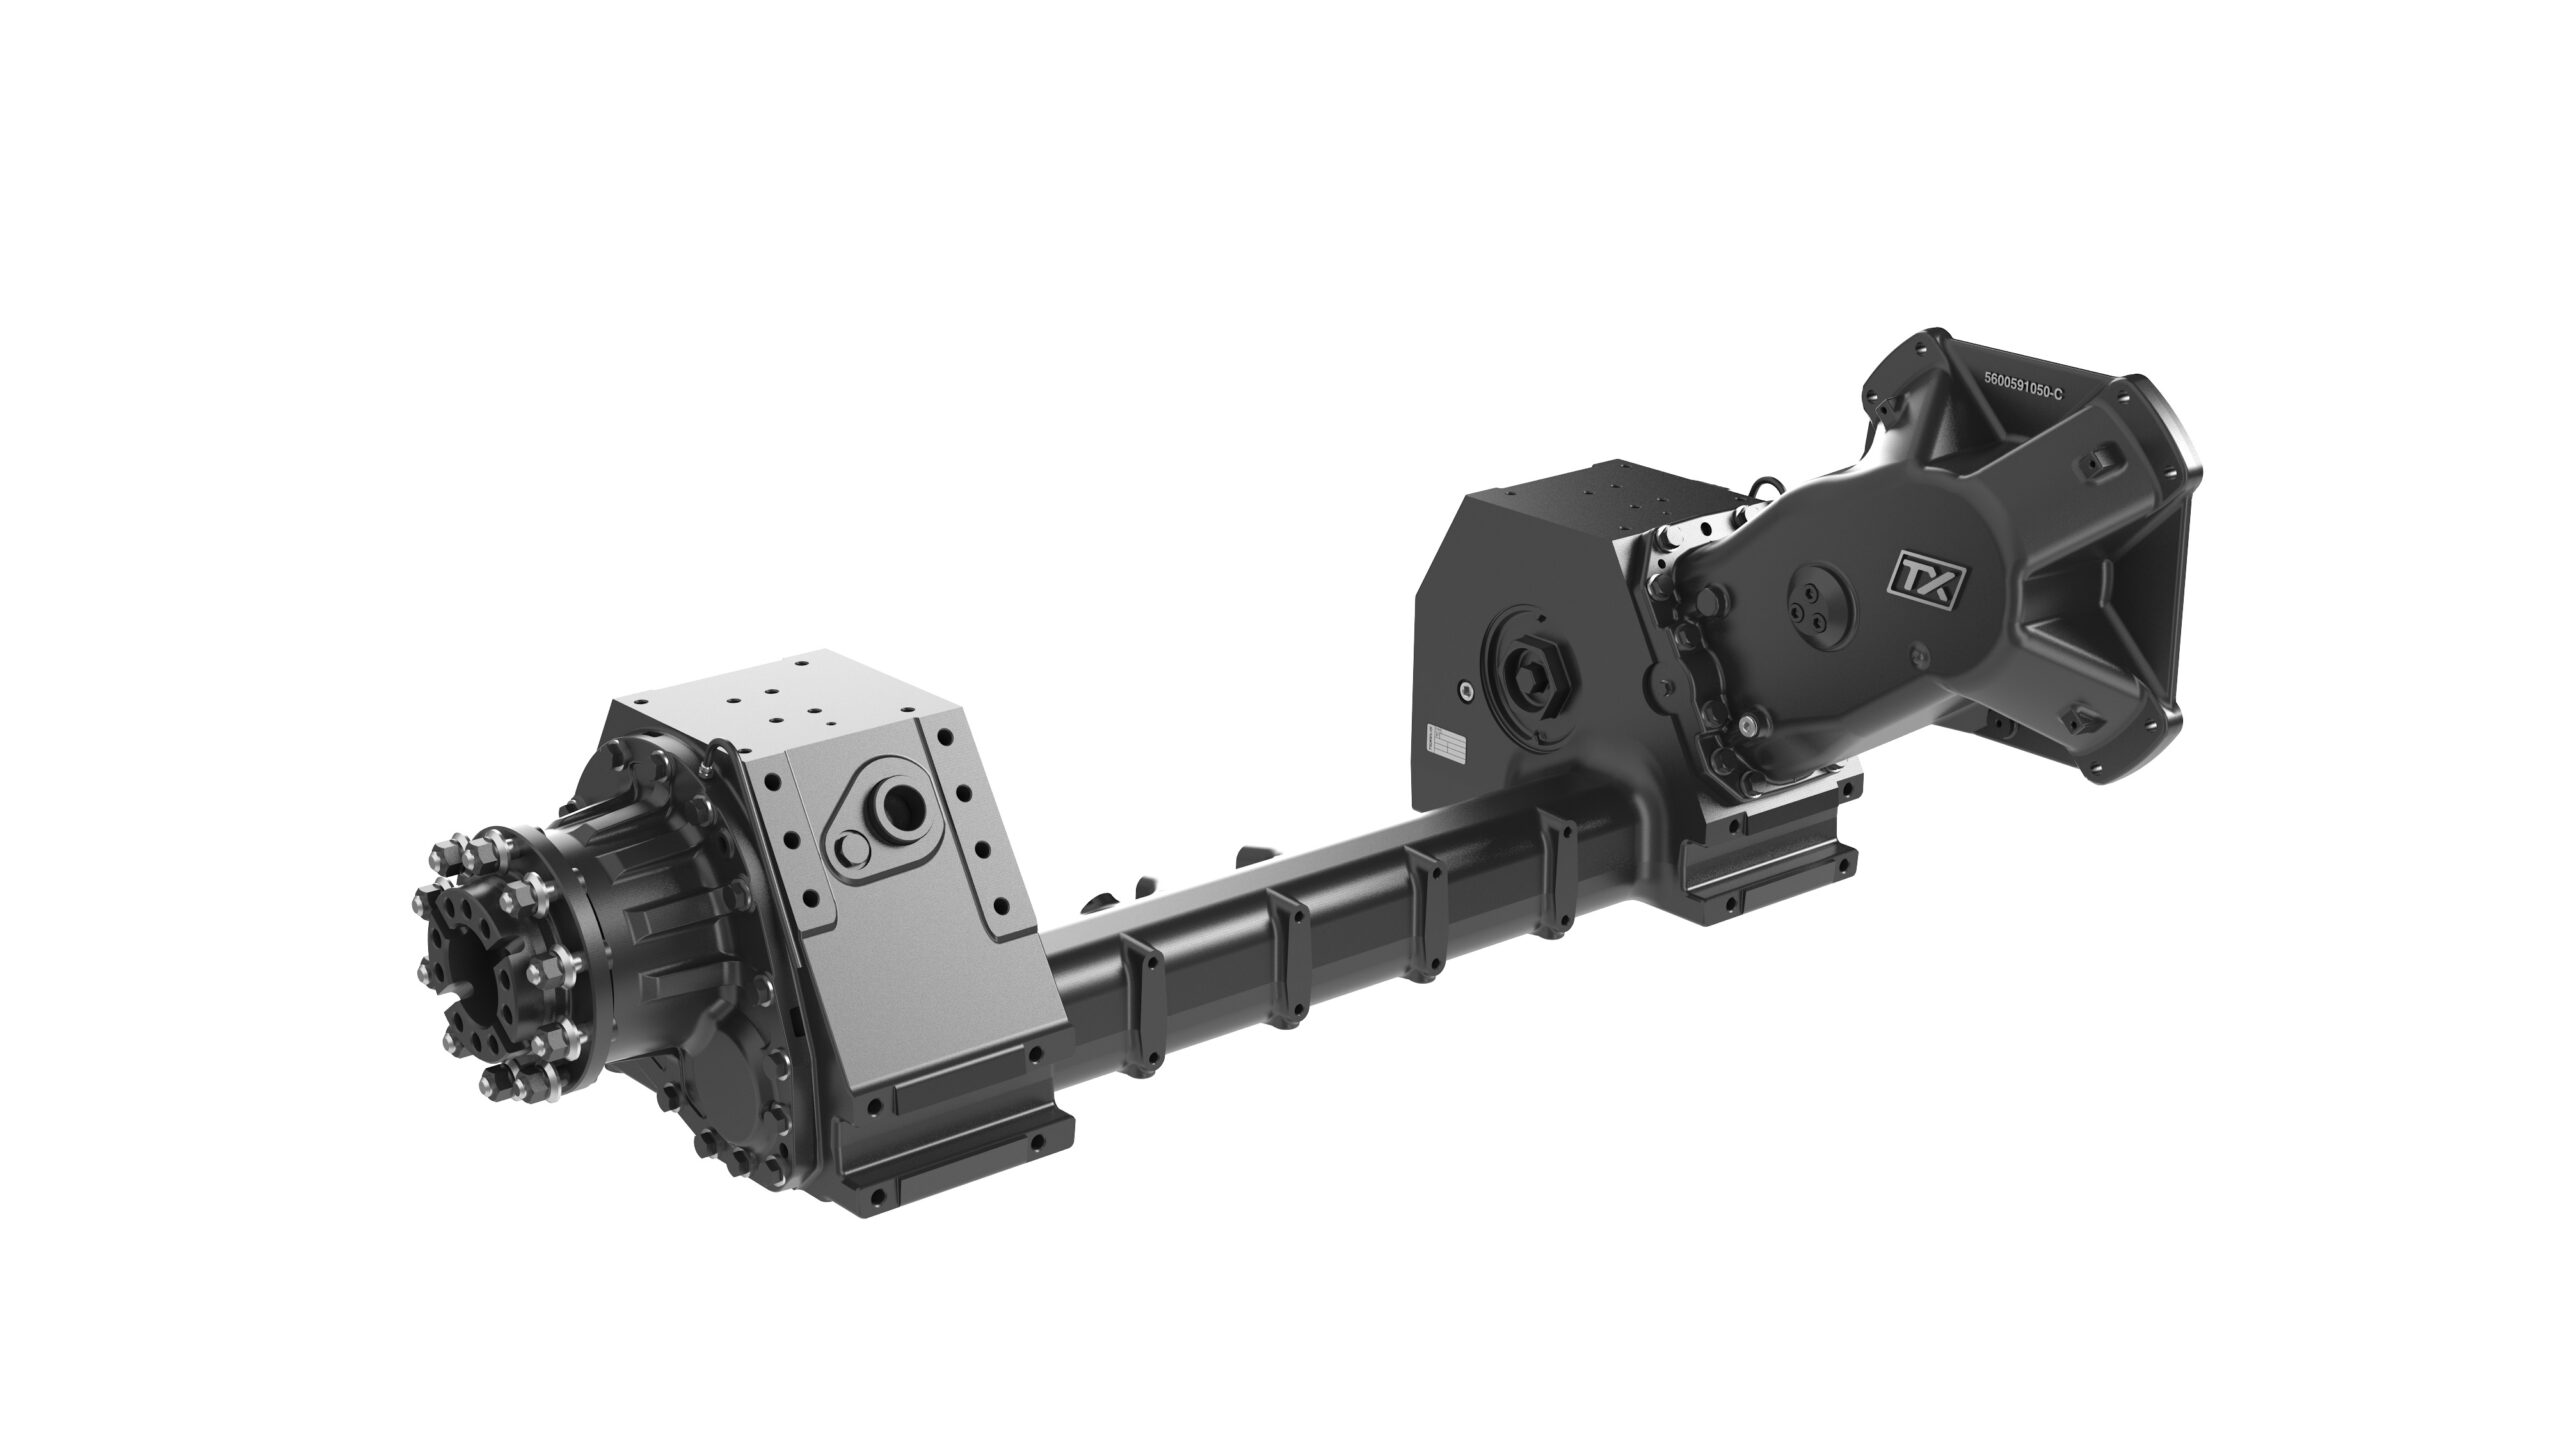 Texelis is the historical designer and supplier of the drive and trailing axles for the Alstom Citadis tramway